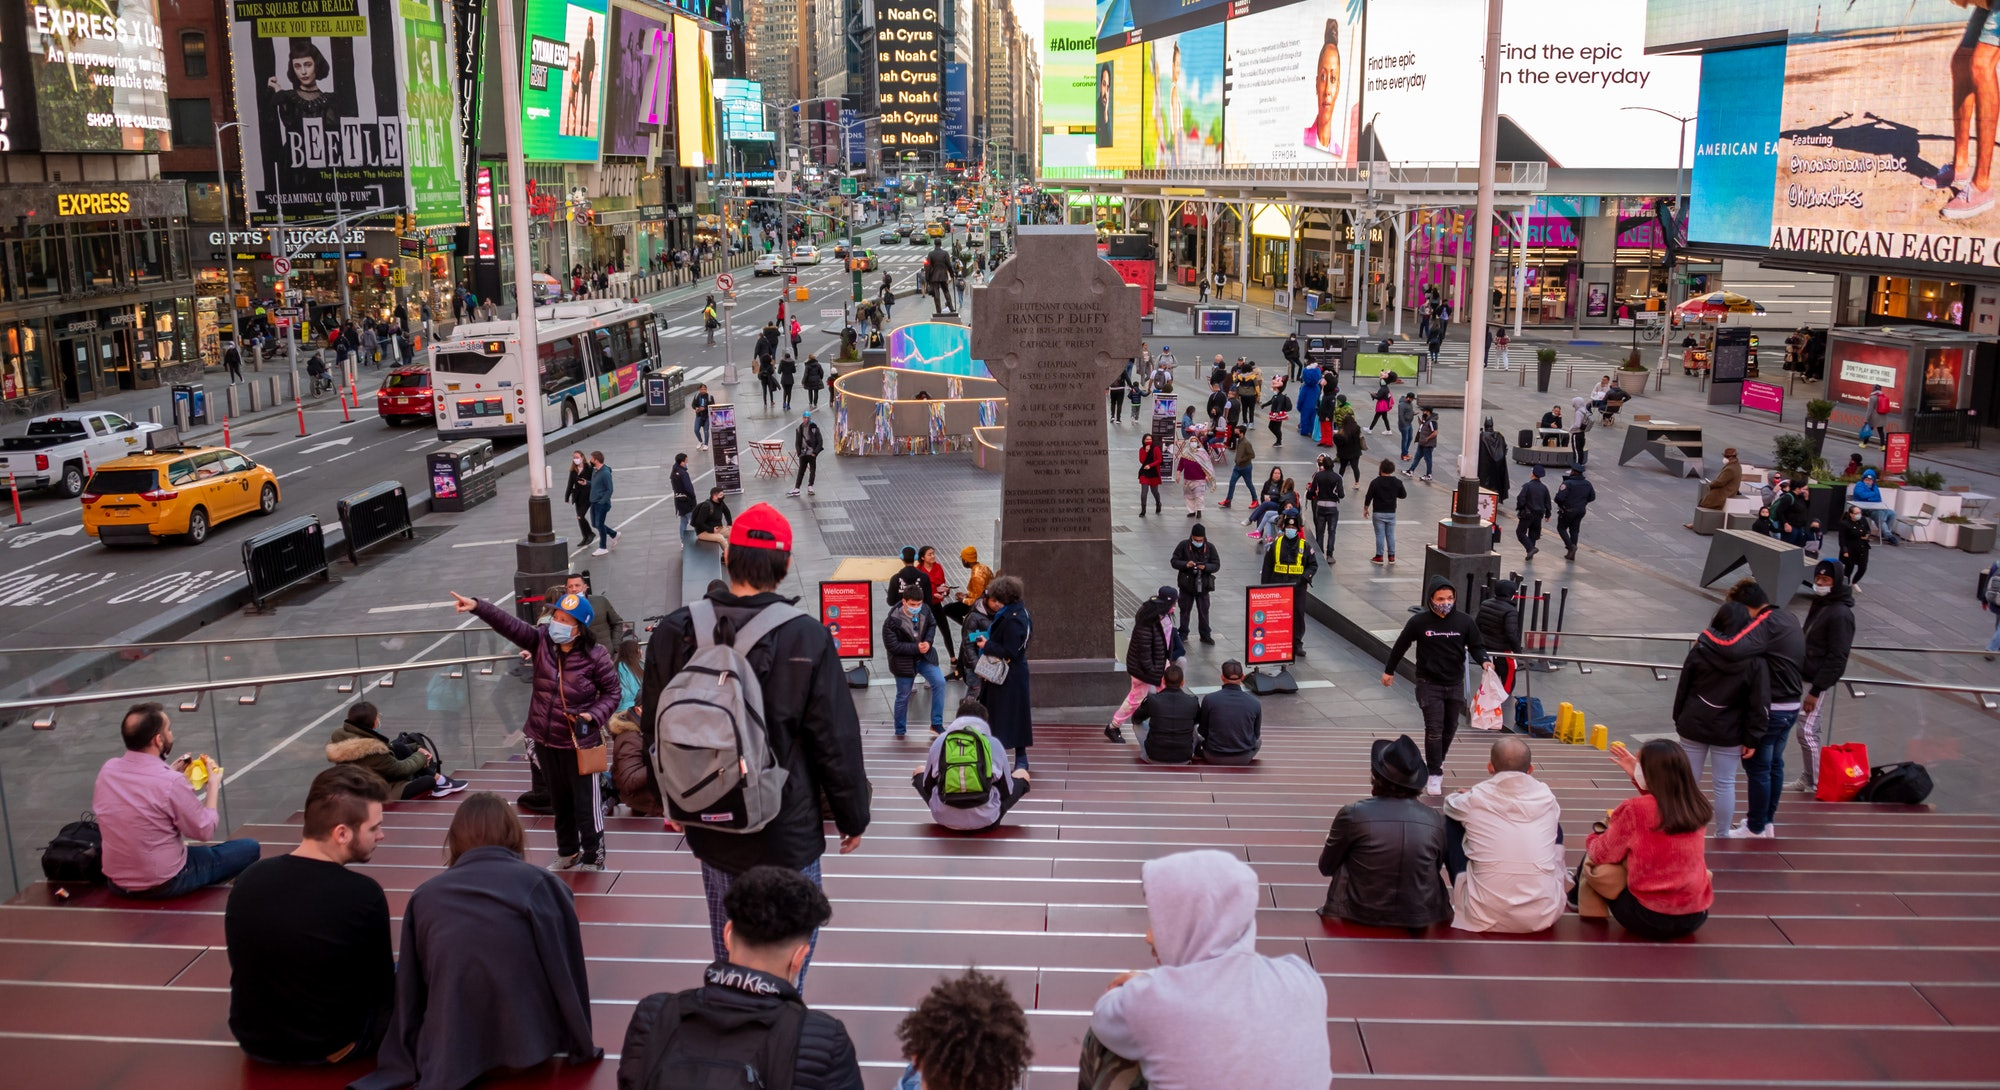 NEW YORK, NEW YORK - MARCH 09: People visit the Red Steps in Times Square amid the coronavirus pandemic on March 09, 2021 in New York City. It has been one year since COVID-19 was first reported in New York City. After undergoing various shutdown orders for the past 12 months, the city is currently in phase 4 of it's reopening plan, allowing for the reopening of low-risk outdoor activities, movie and television productions, indoor dining as well as the opening of movie theaters, all with capacity restrictions. (Photo by Noam Galai/Getty Images)